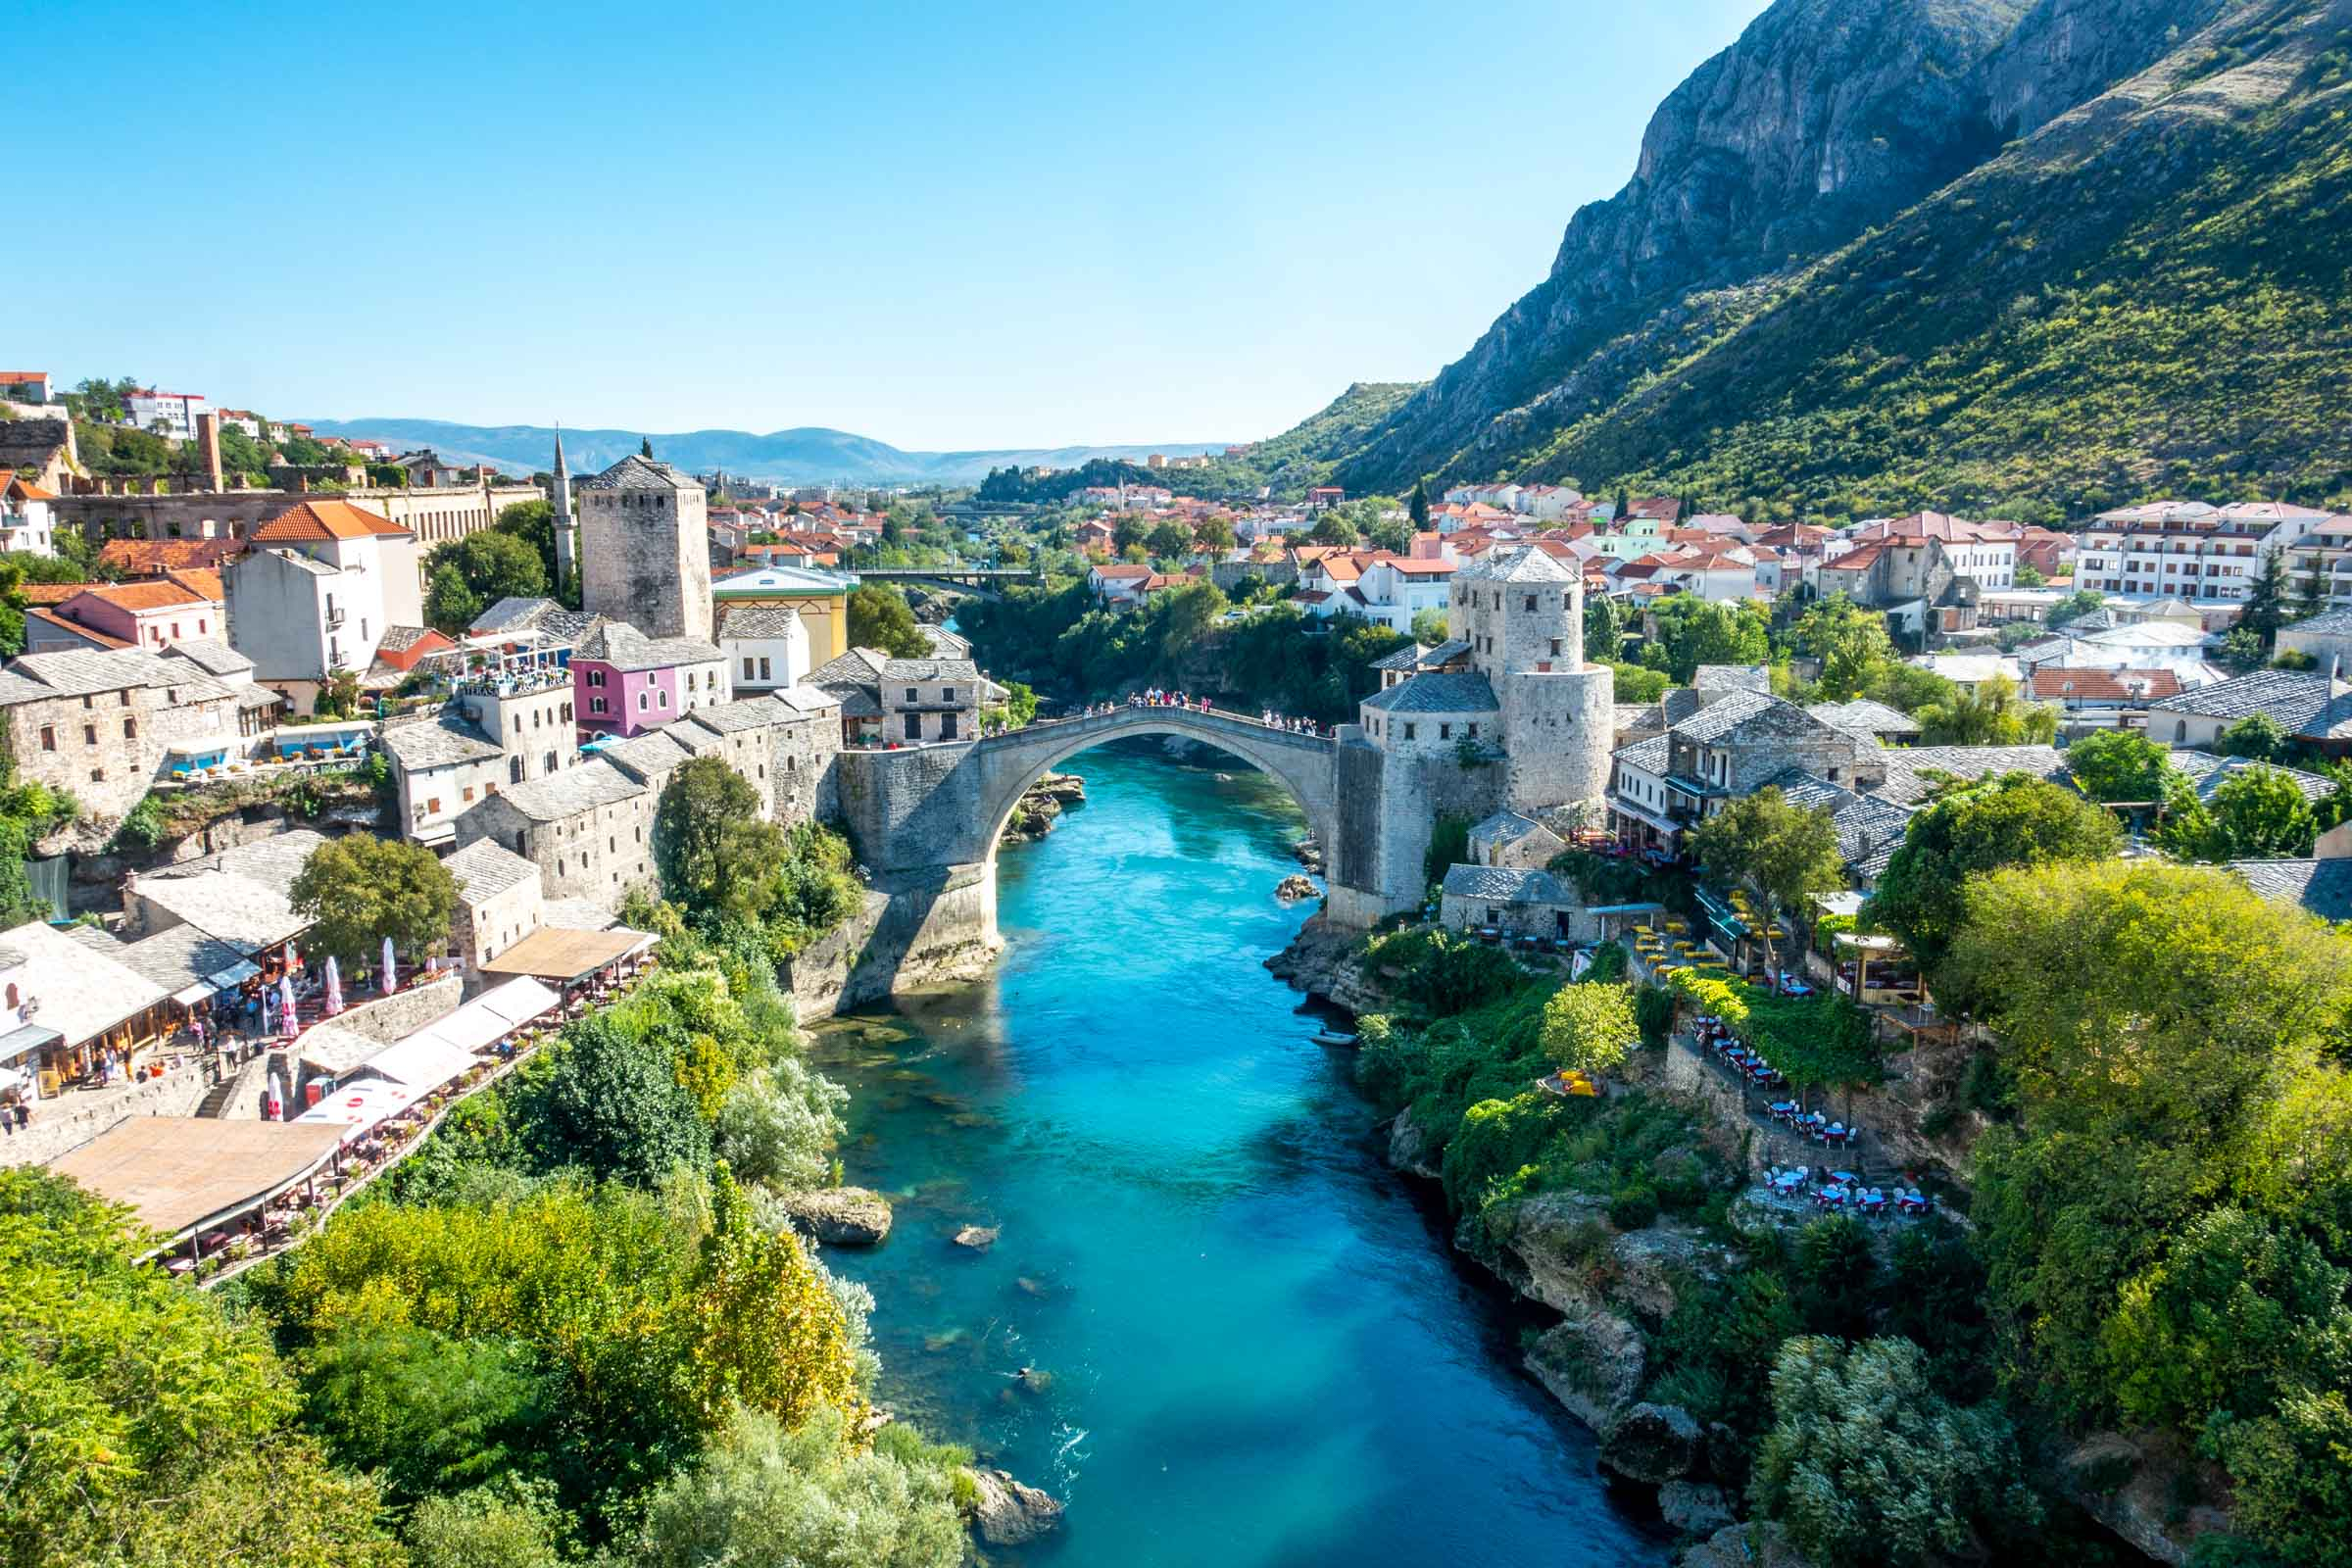 Stone bridge (Stari Most) over a river with buildings on both riverbanks